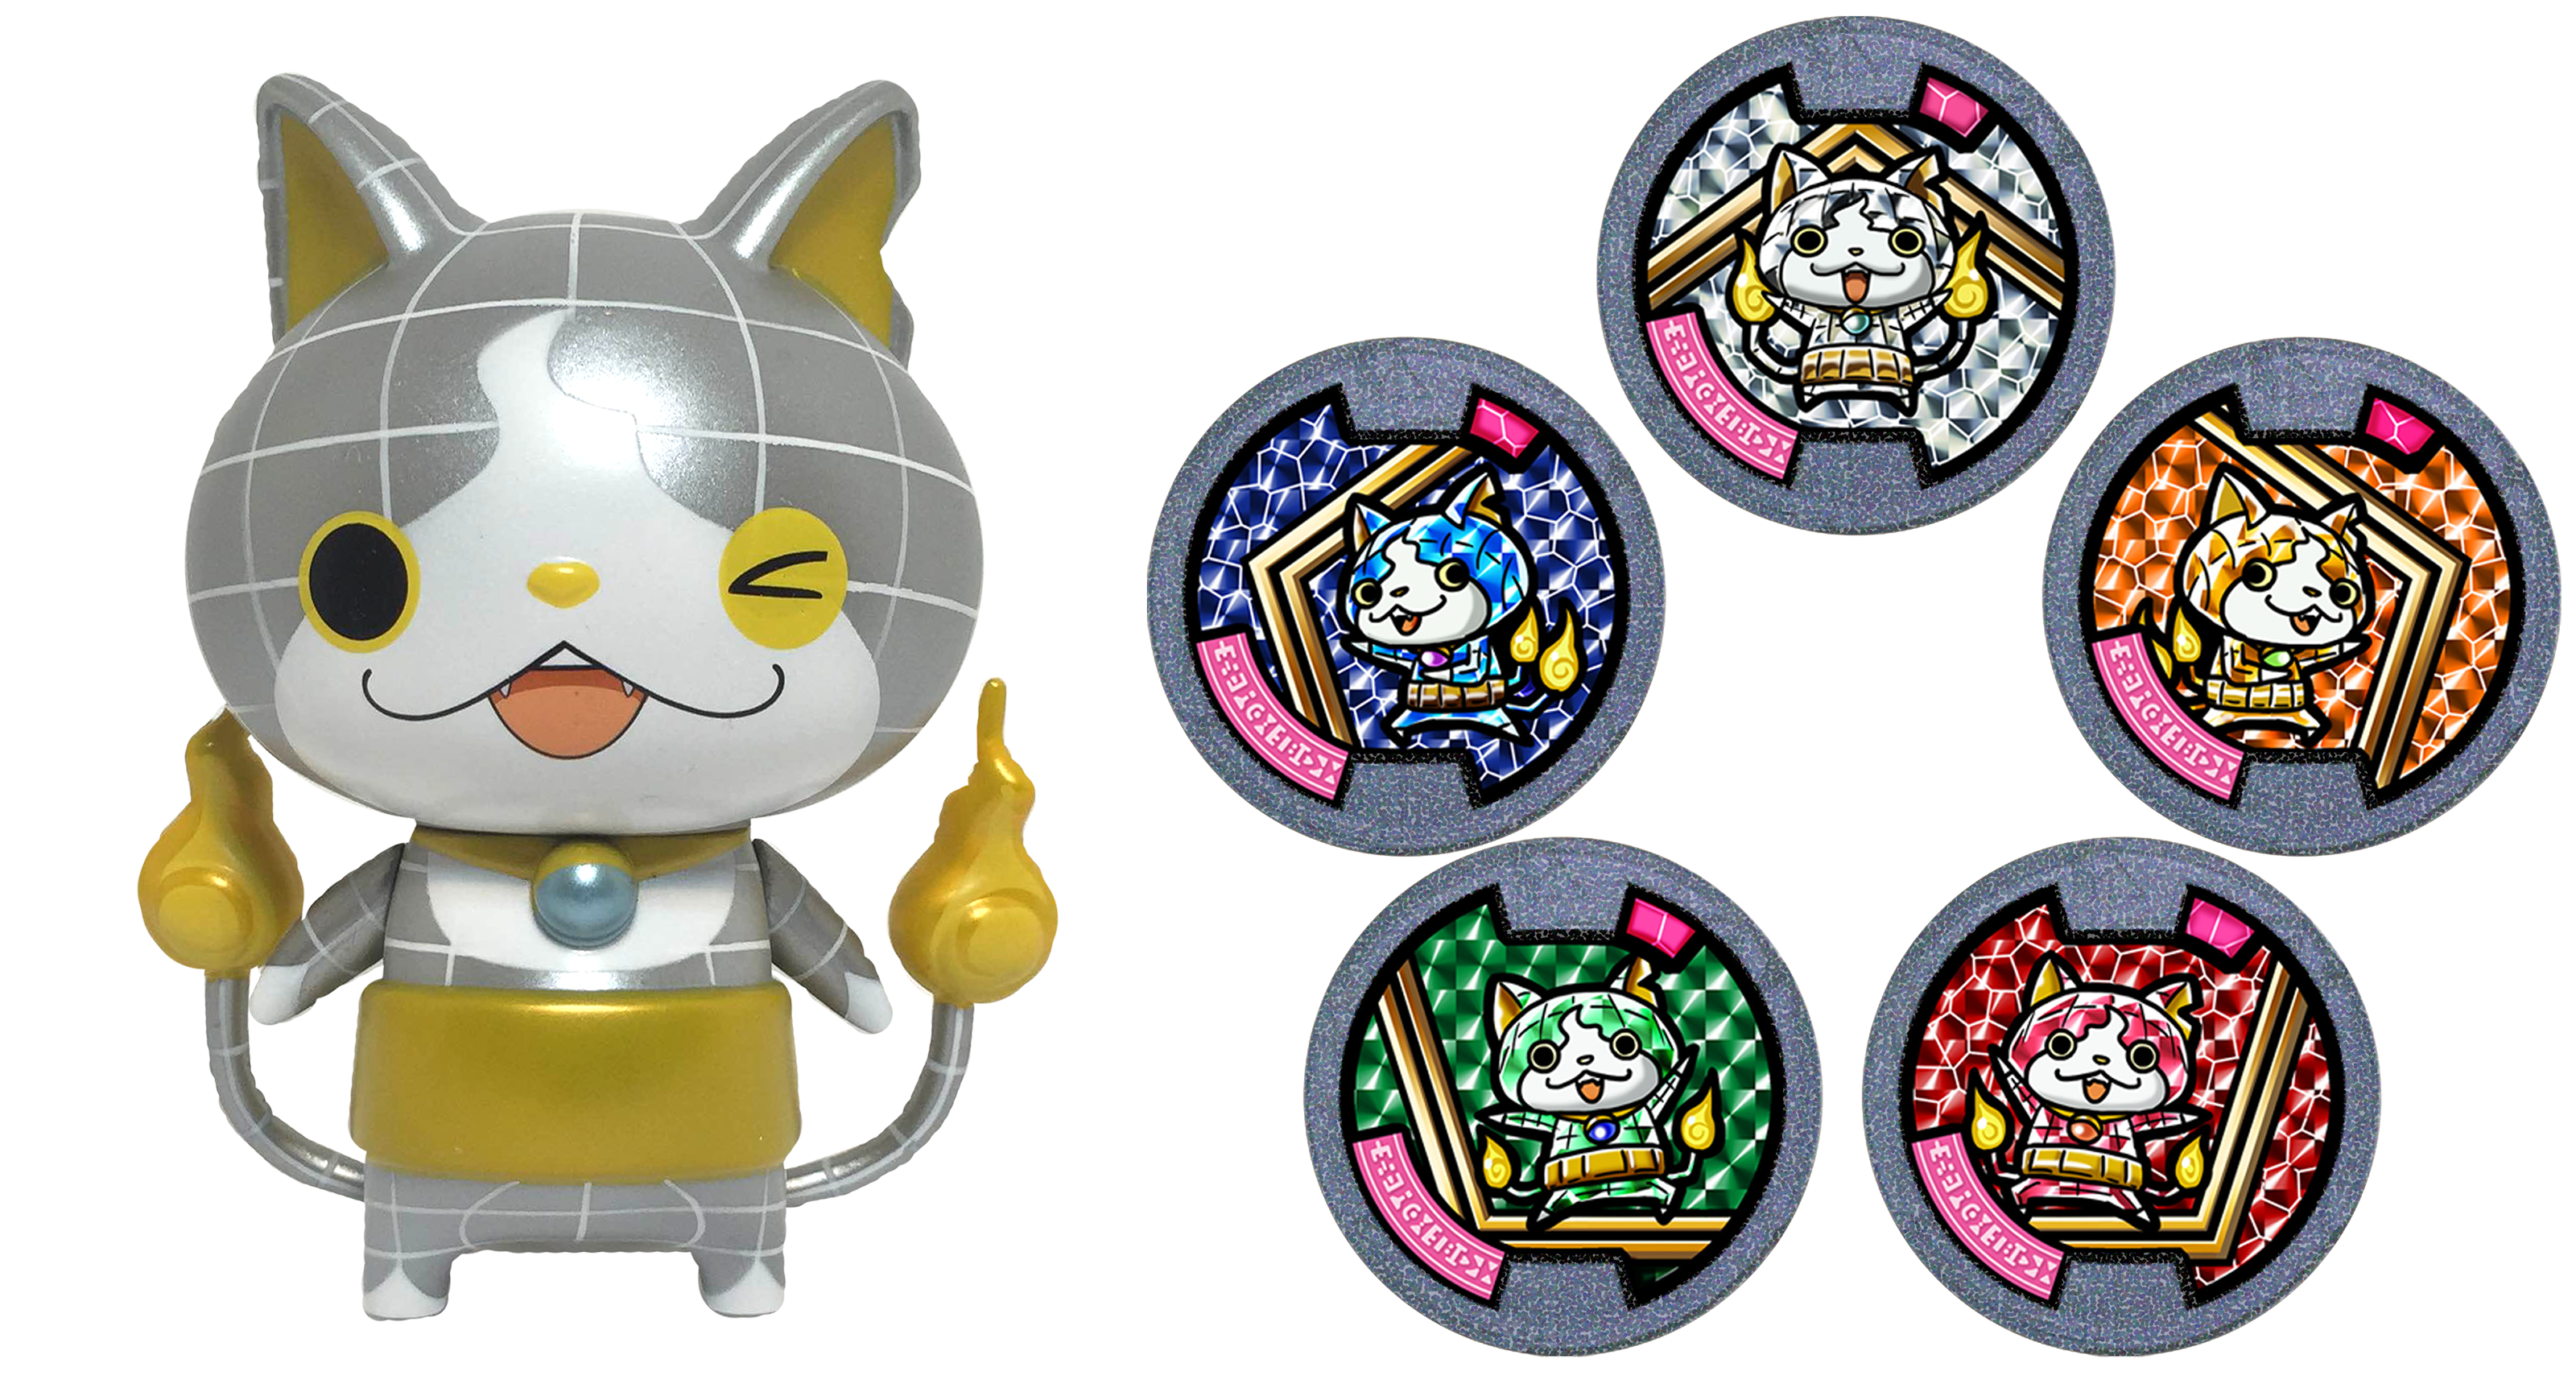 Yo Kai Watch heads to San Diego ic Con with shiny new toys